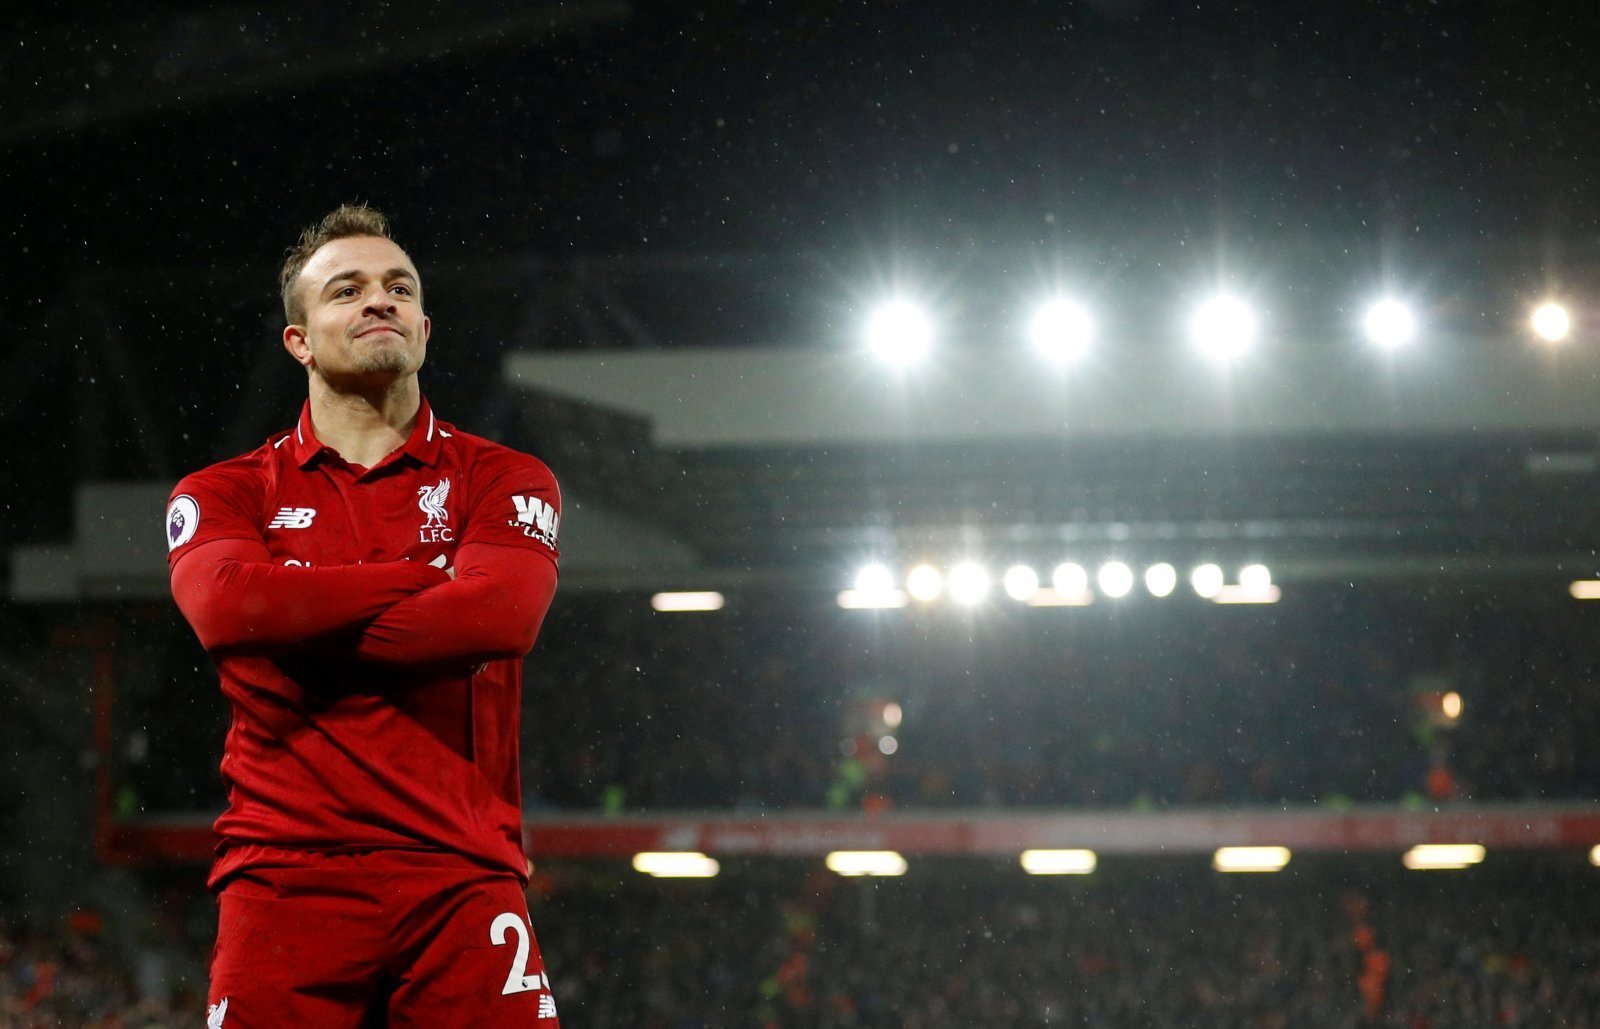 Liverpool fans took to Twitter to delight at Shaqiri's appearance yesterday